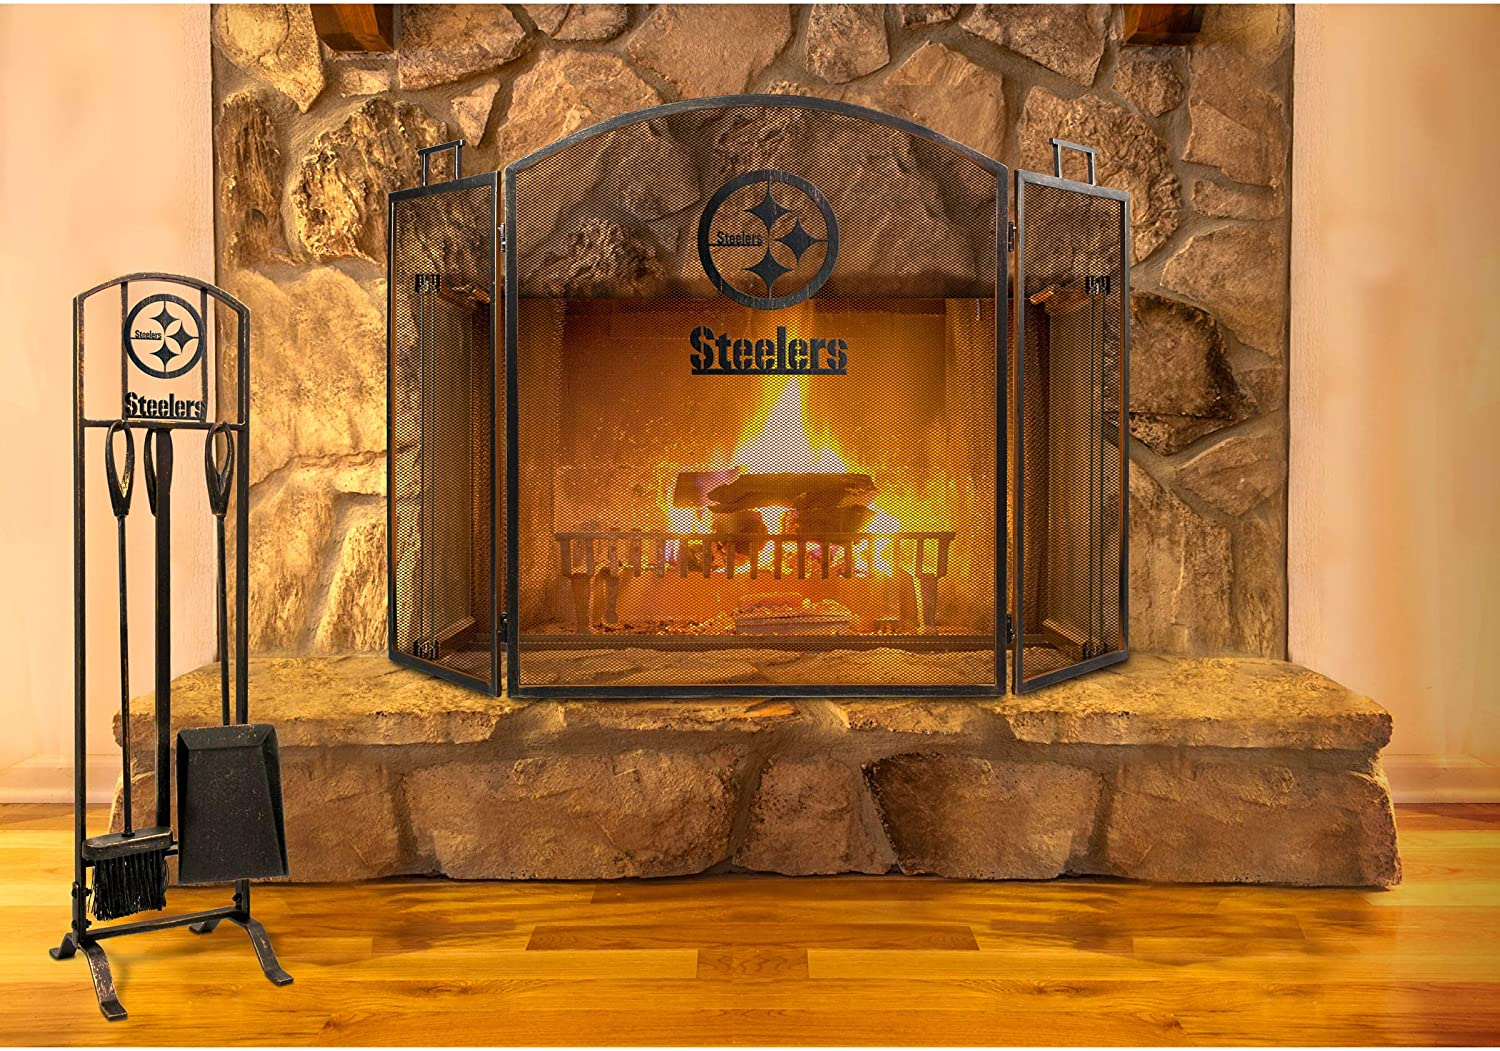 Imperial Officially Licensed NFL Merchandise Fireplace Tool Set